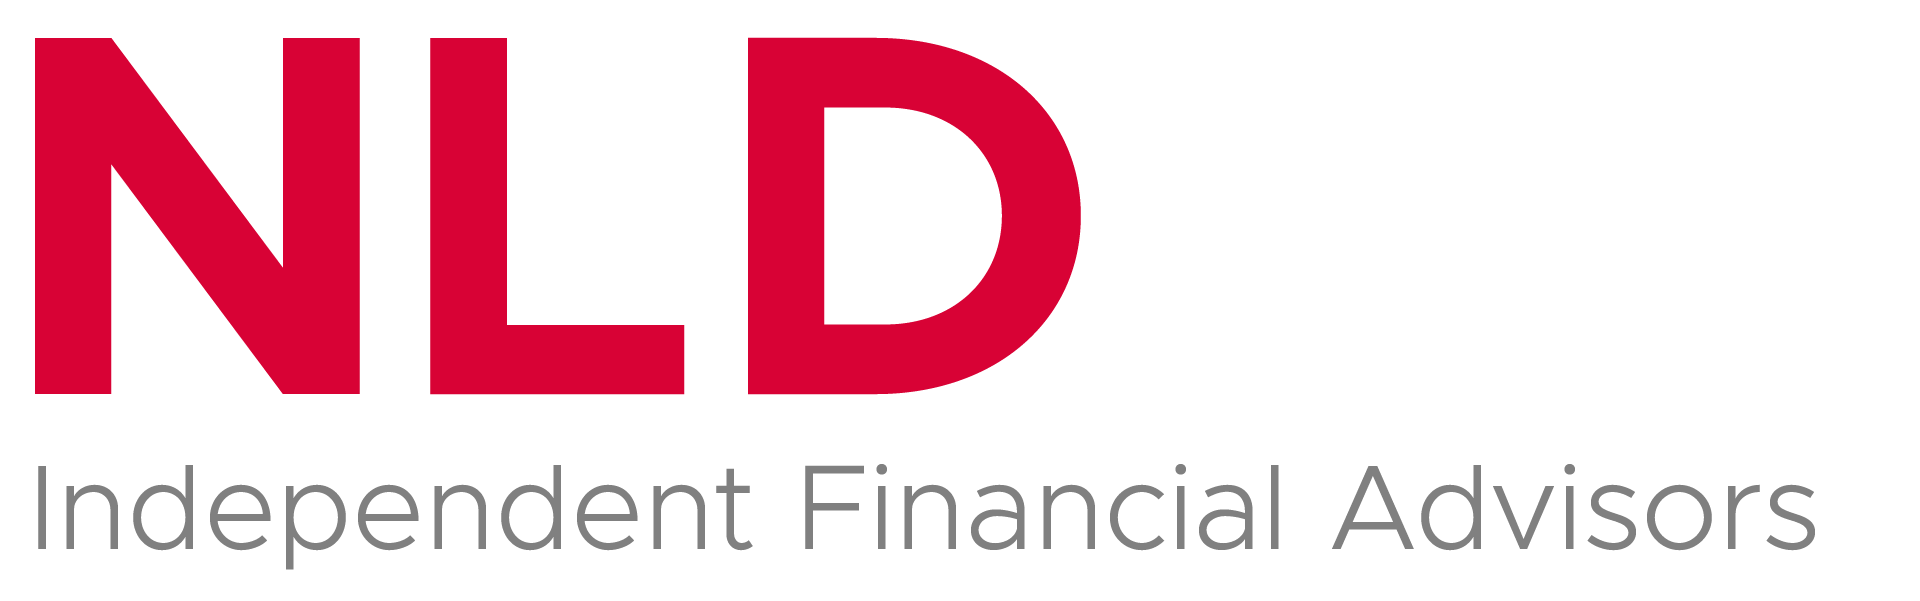 NLD Independent Financial Advisors Logo